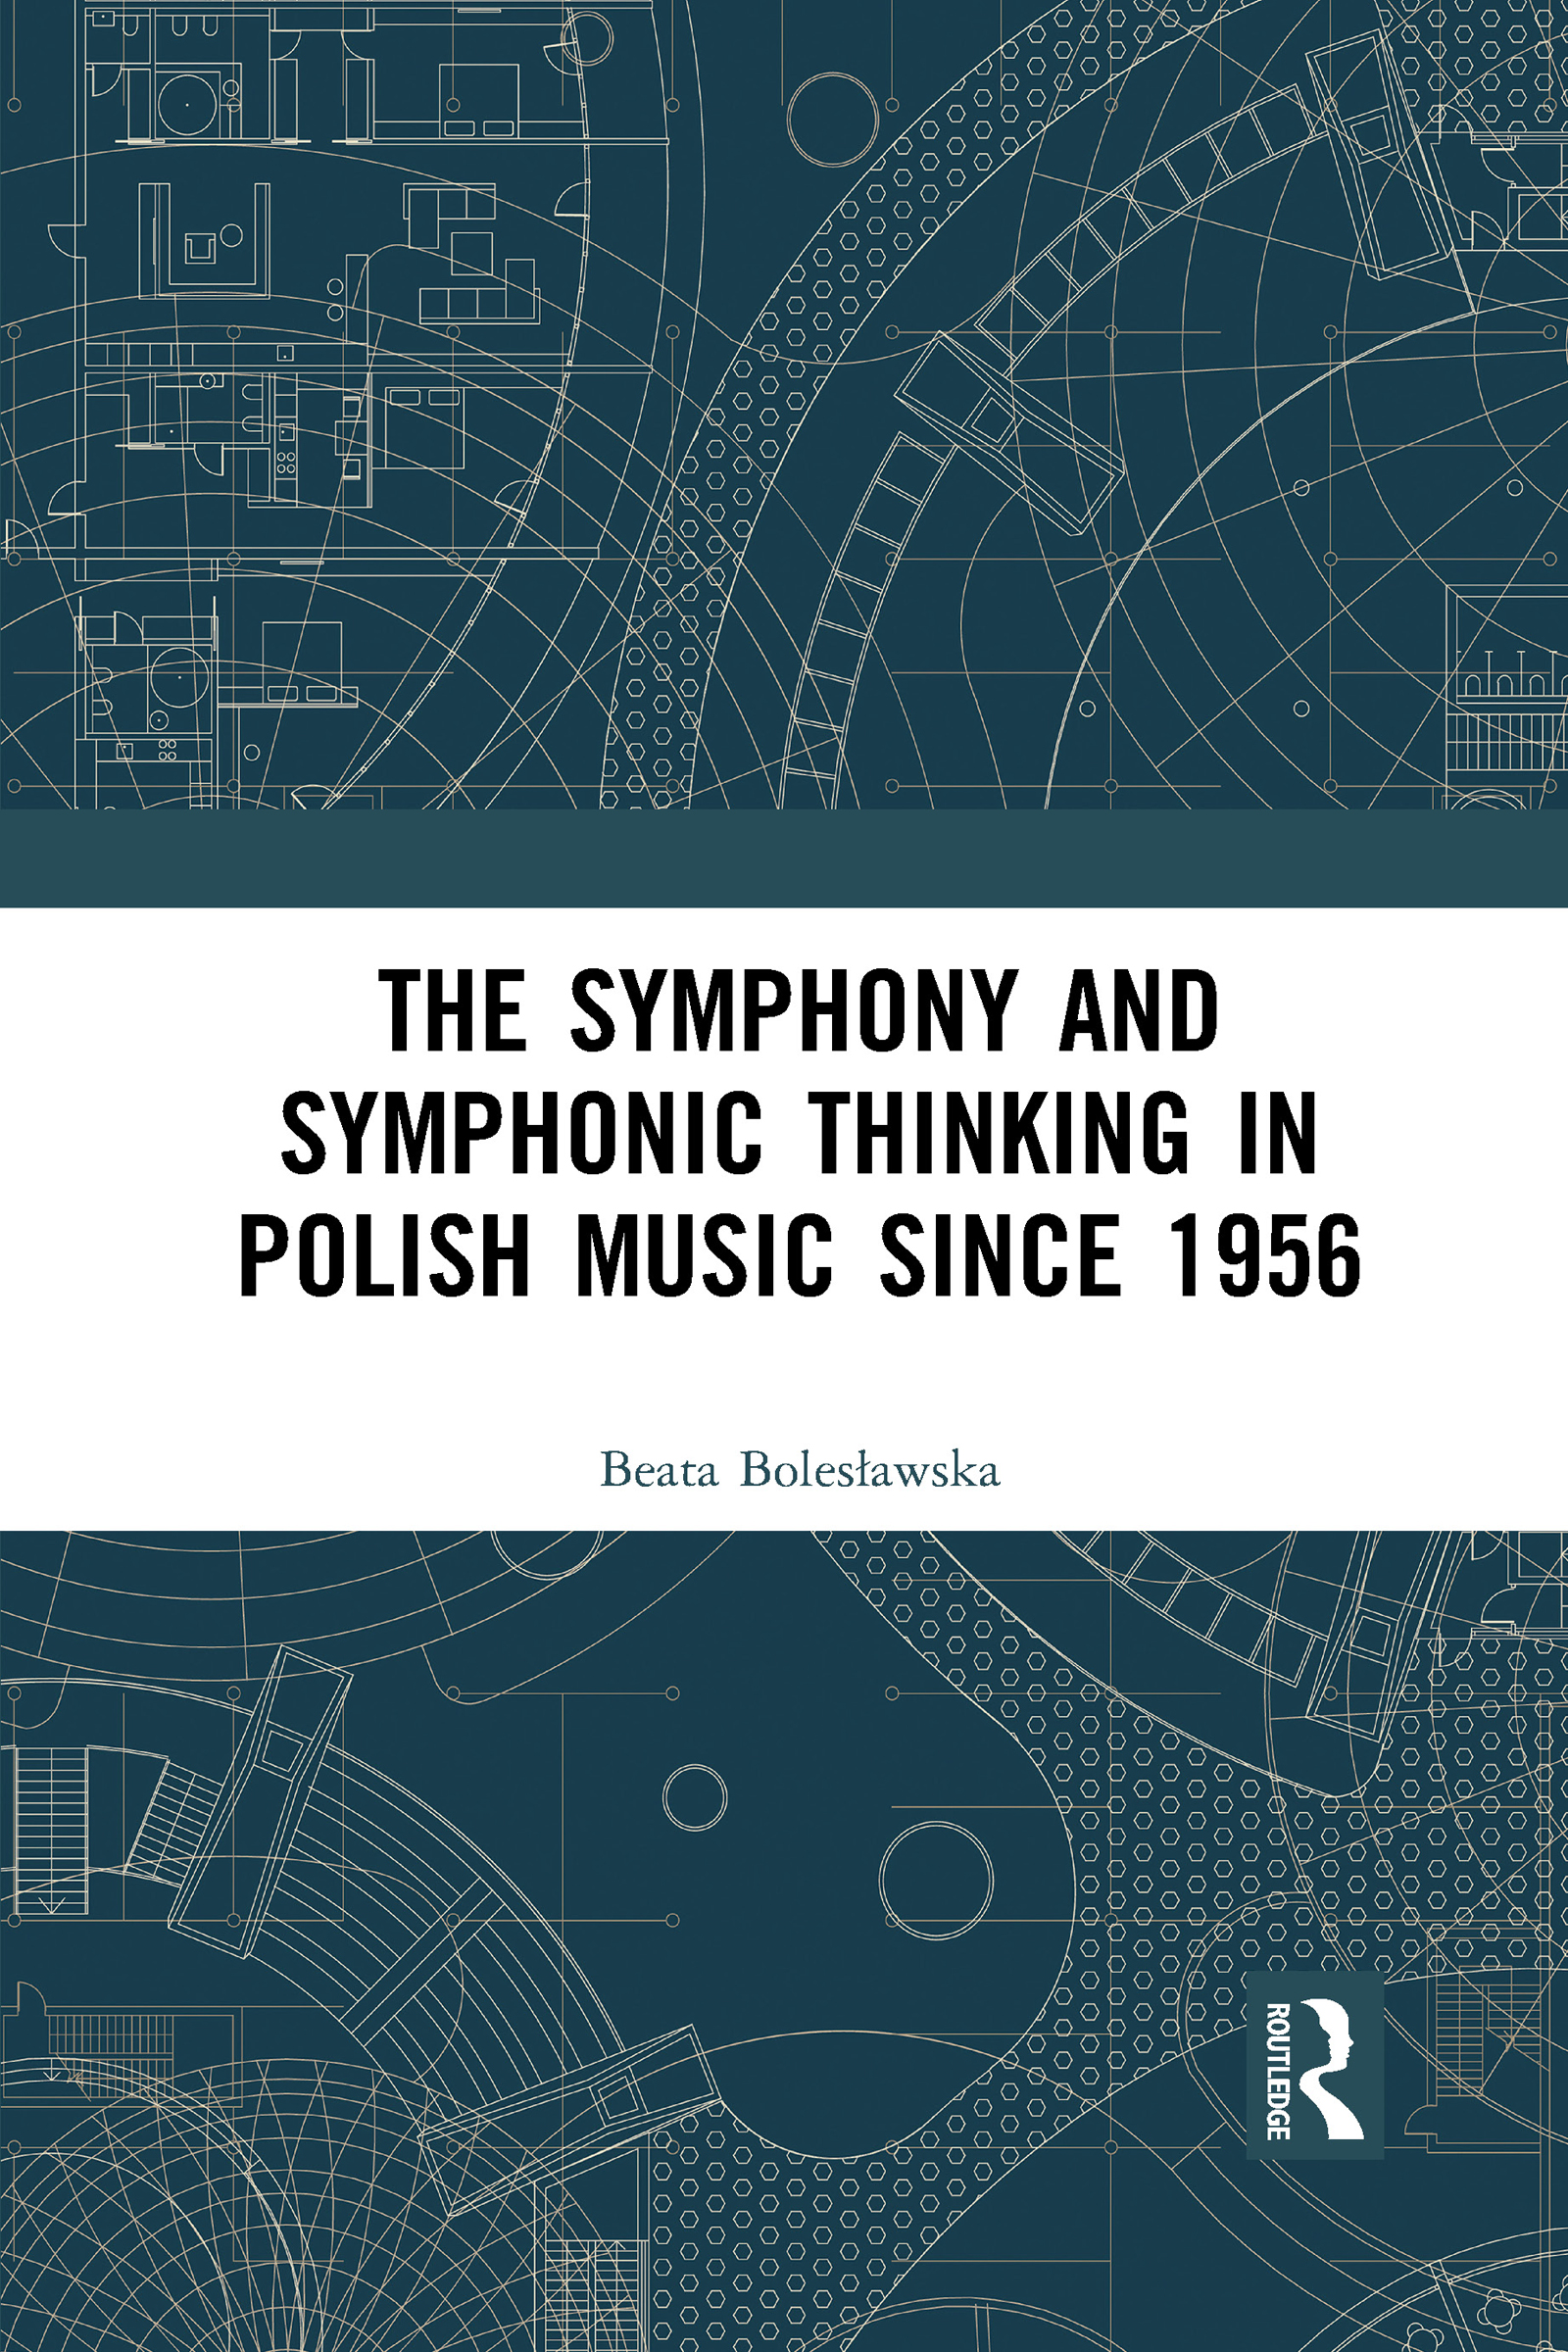 The Symphony and Symphonic Thinking in Polish Music Since 1956